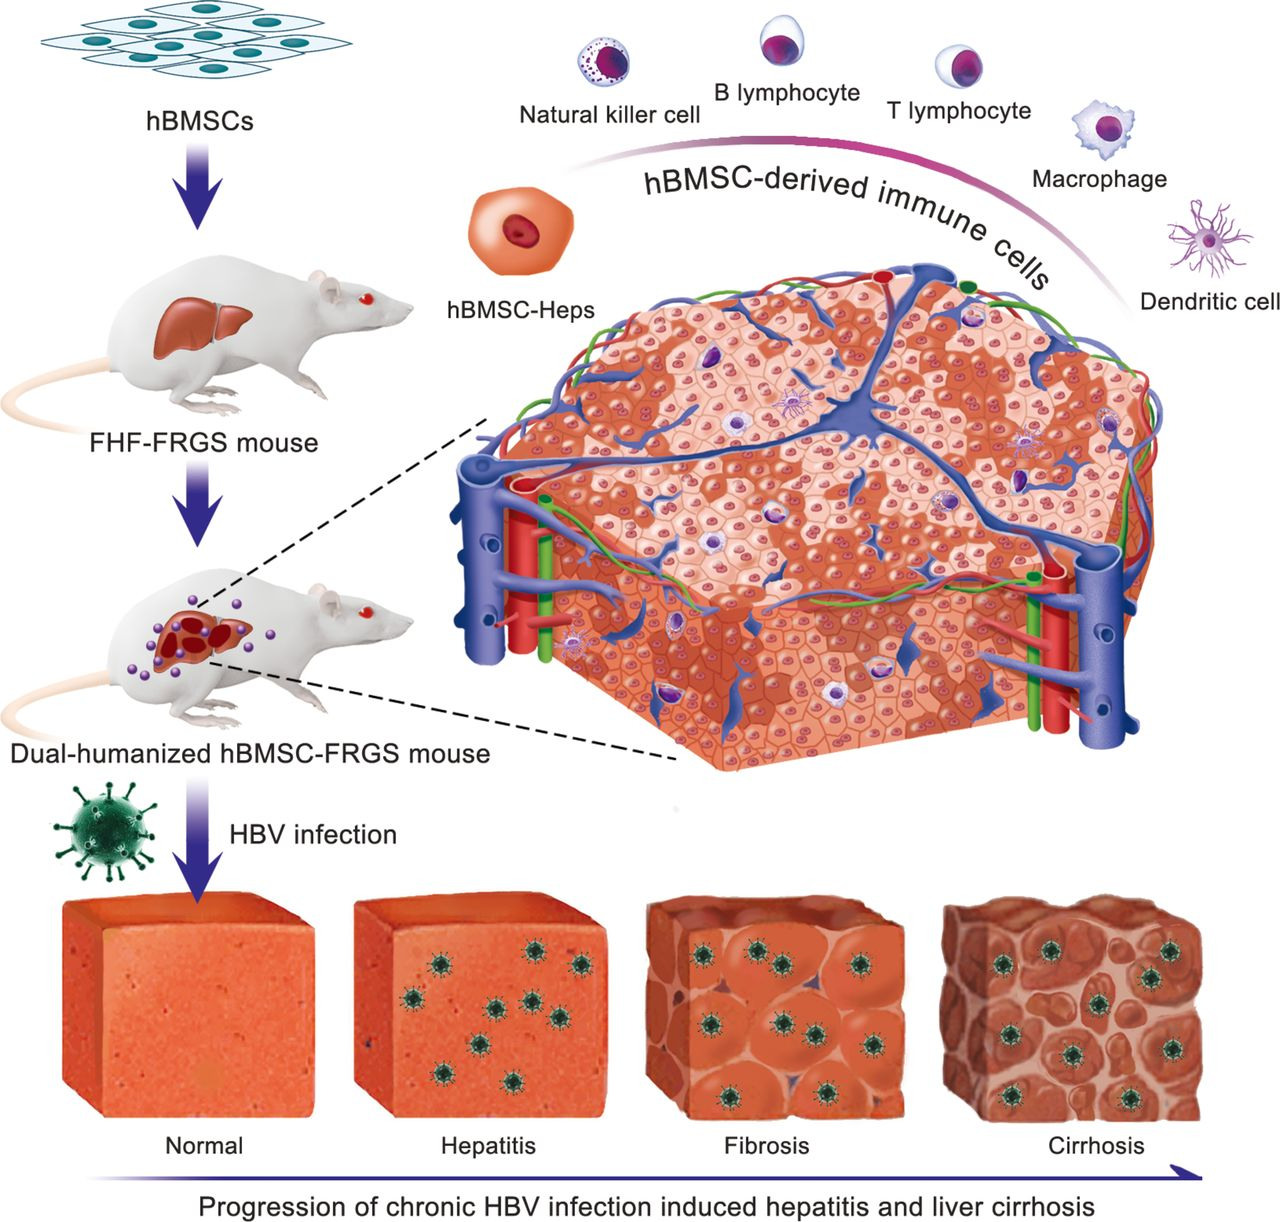 HBV infection-induced liver cirrhosis development in dual